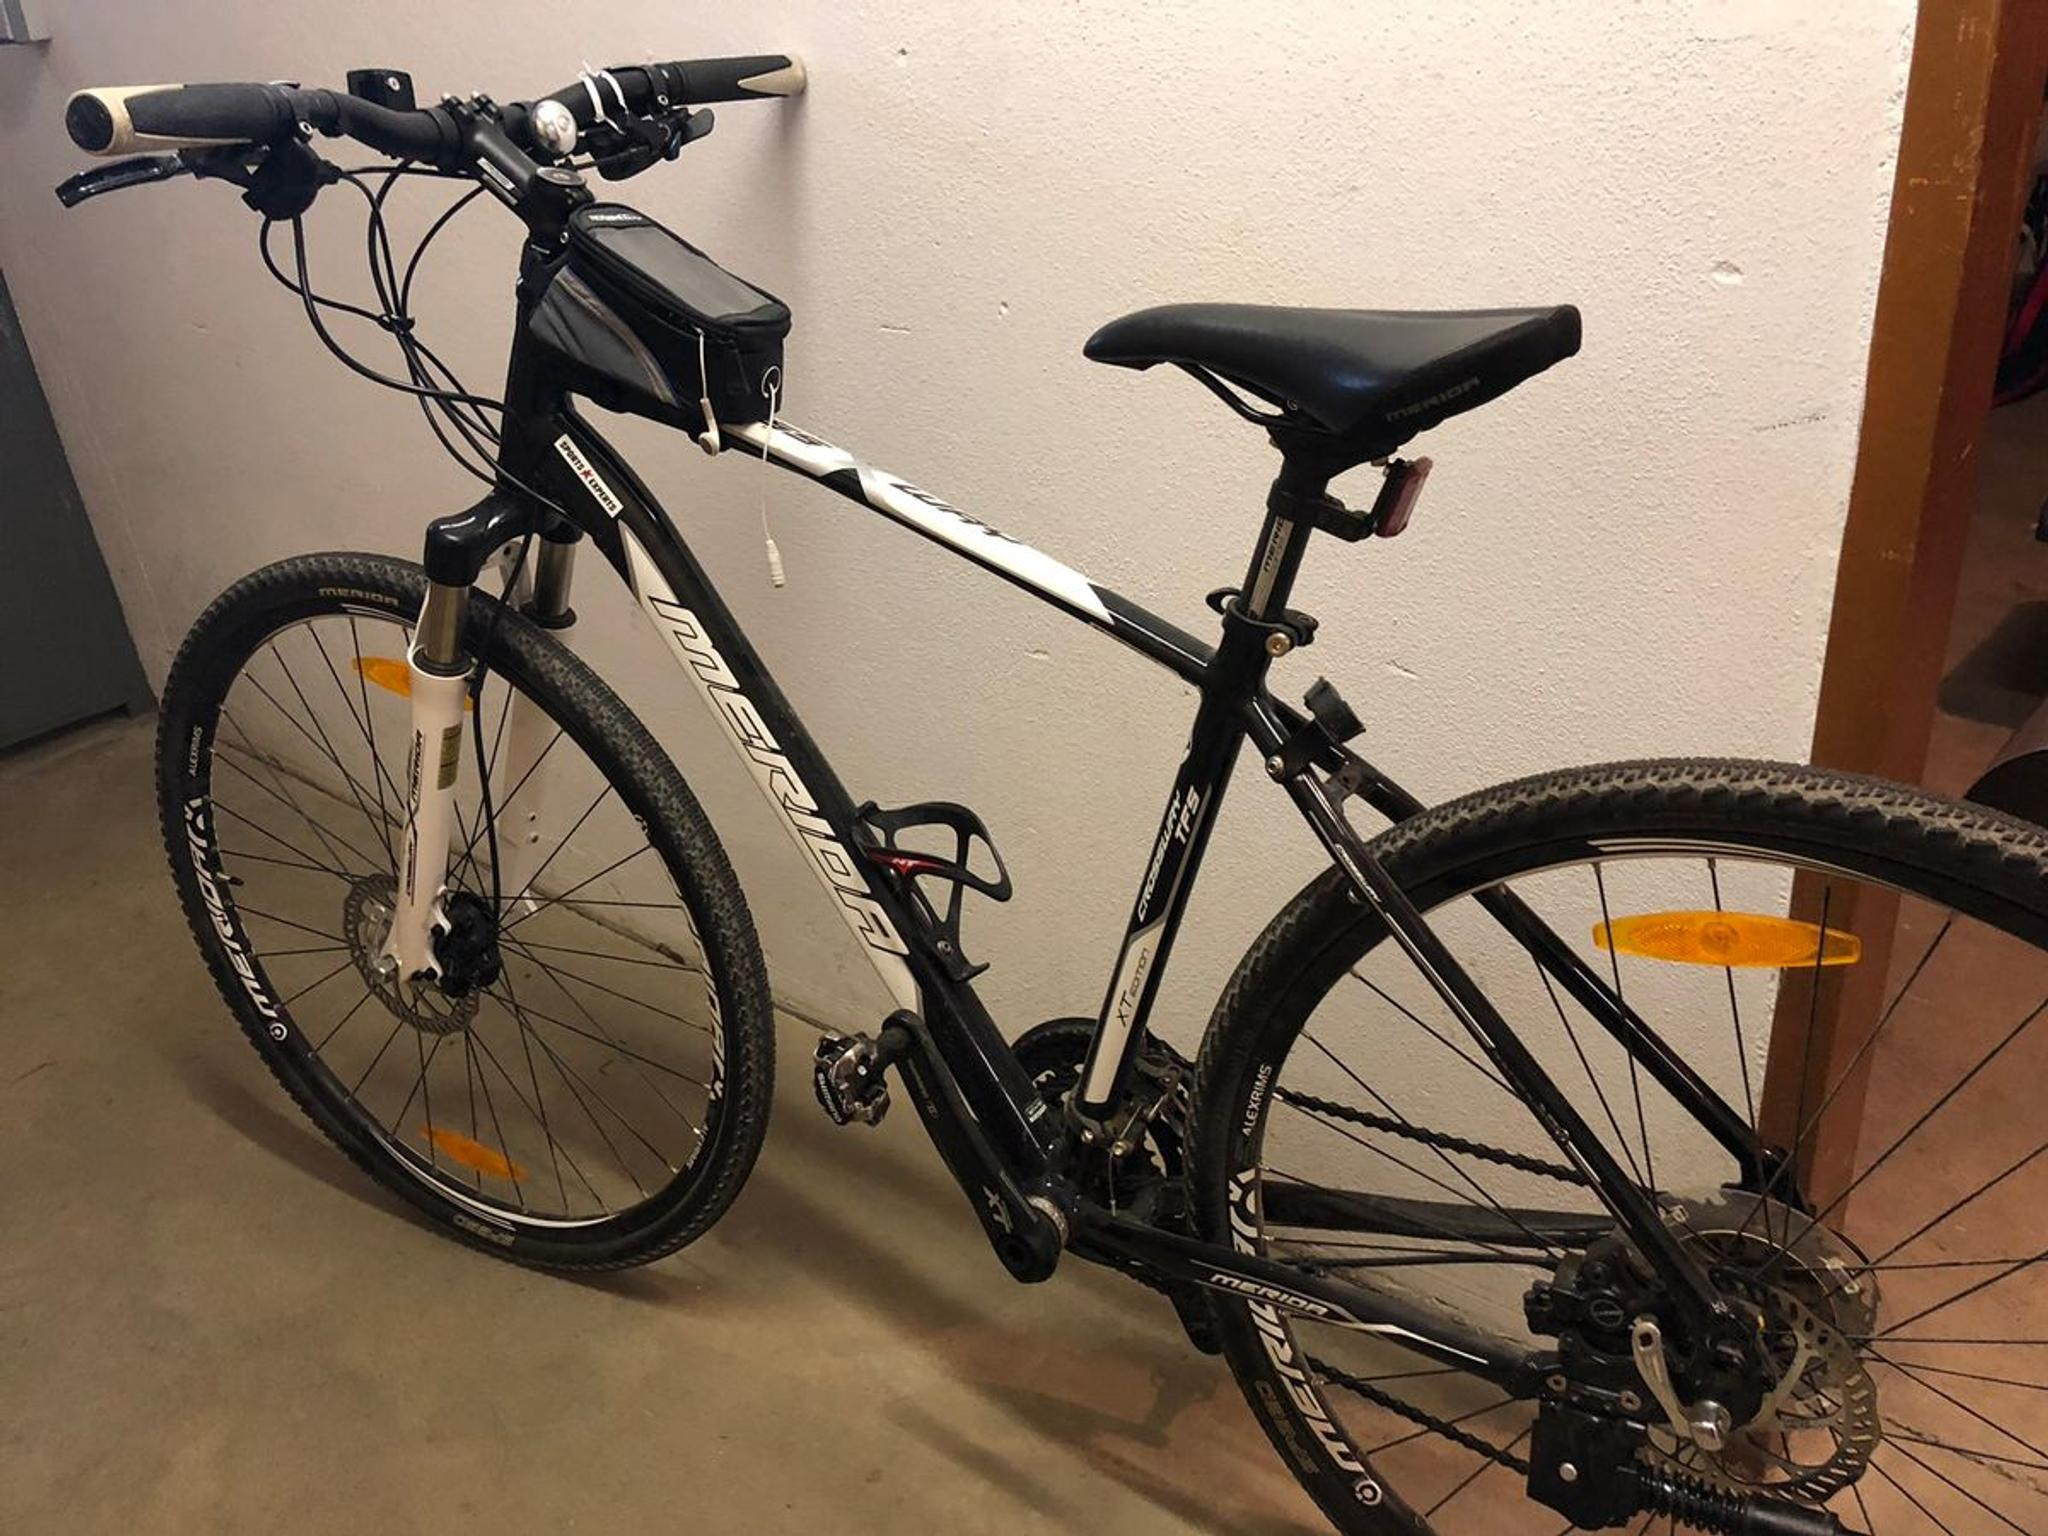 Einzigartiges Cannondale Single-Speed, 499,- (9572